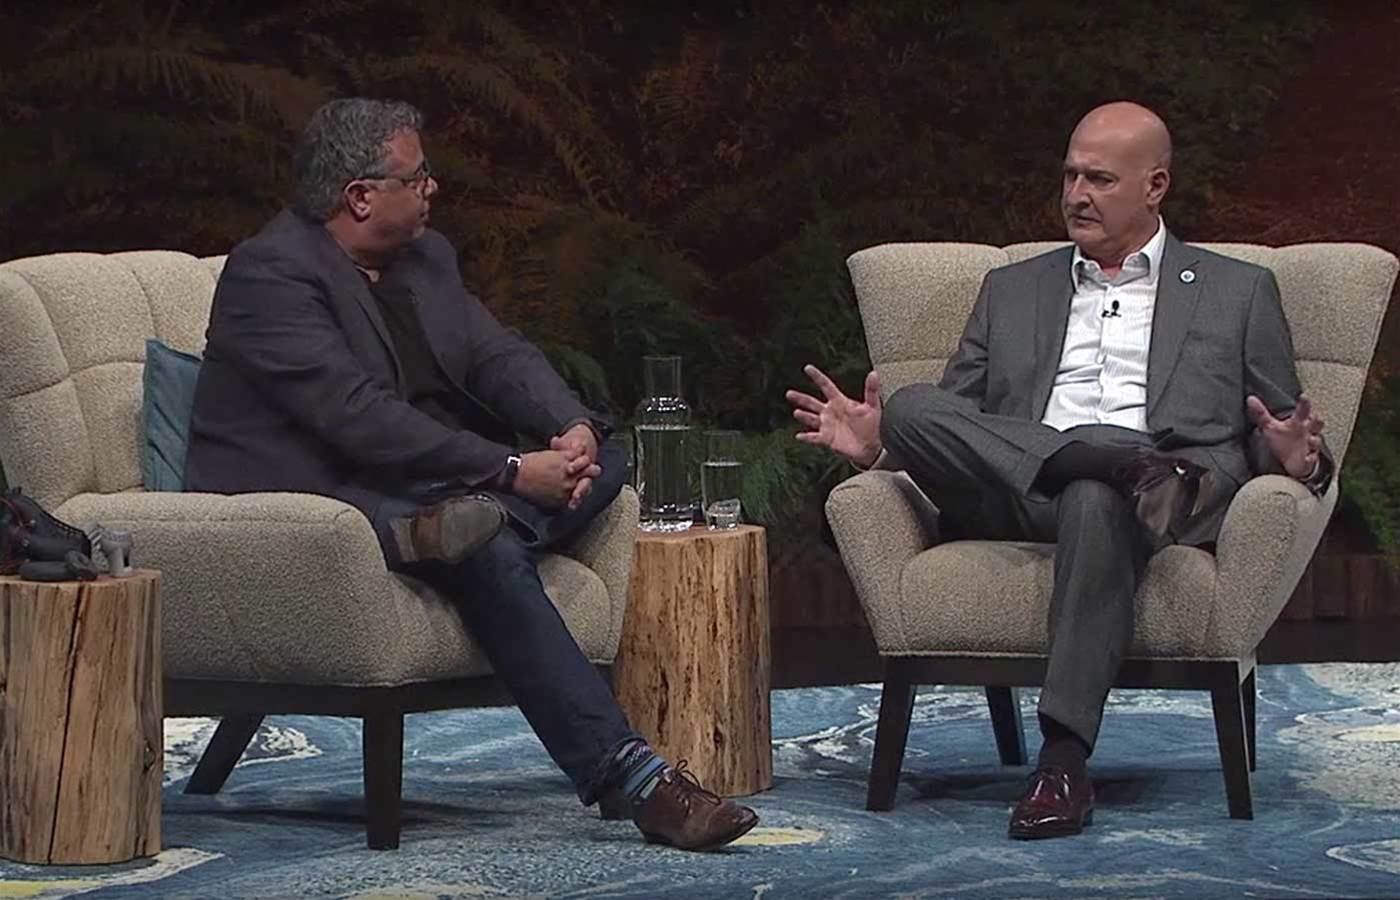 HP boss talks 3D printing at Dreamforce